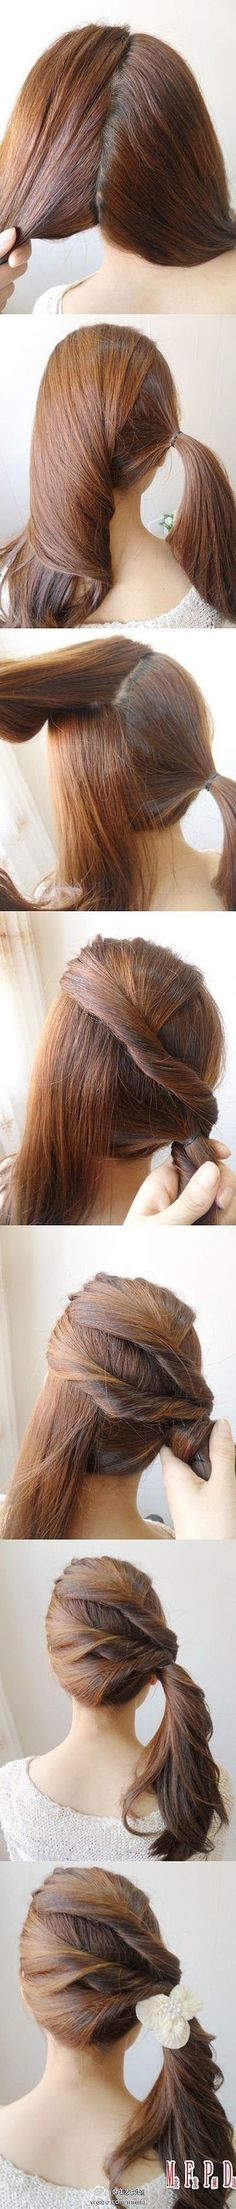 Cute style for long hair